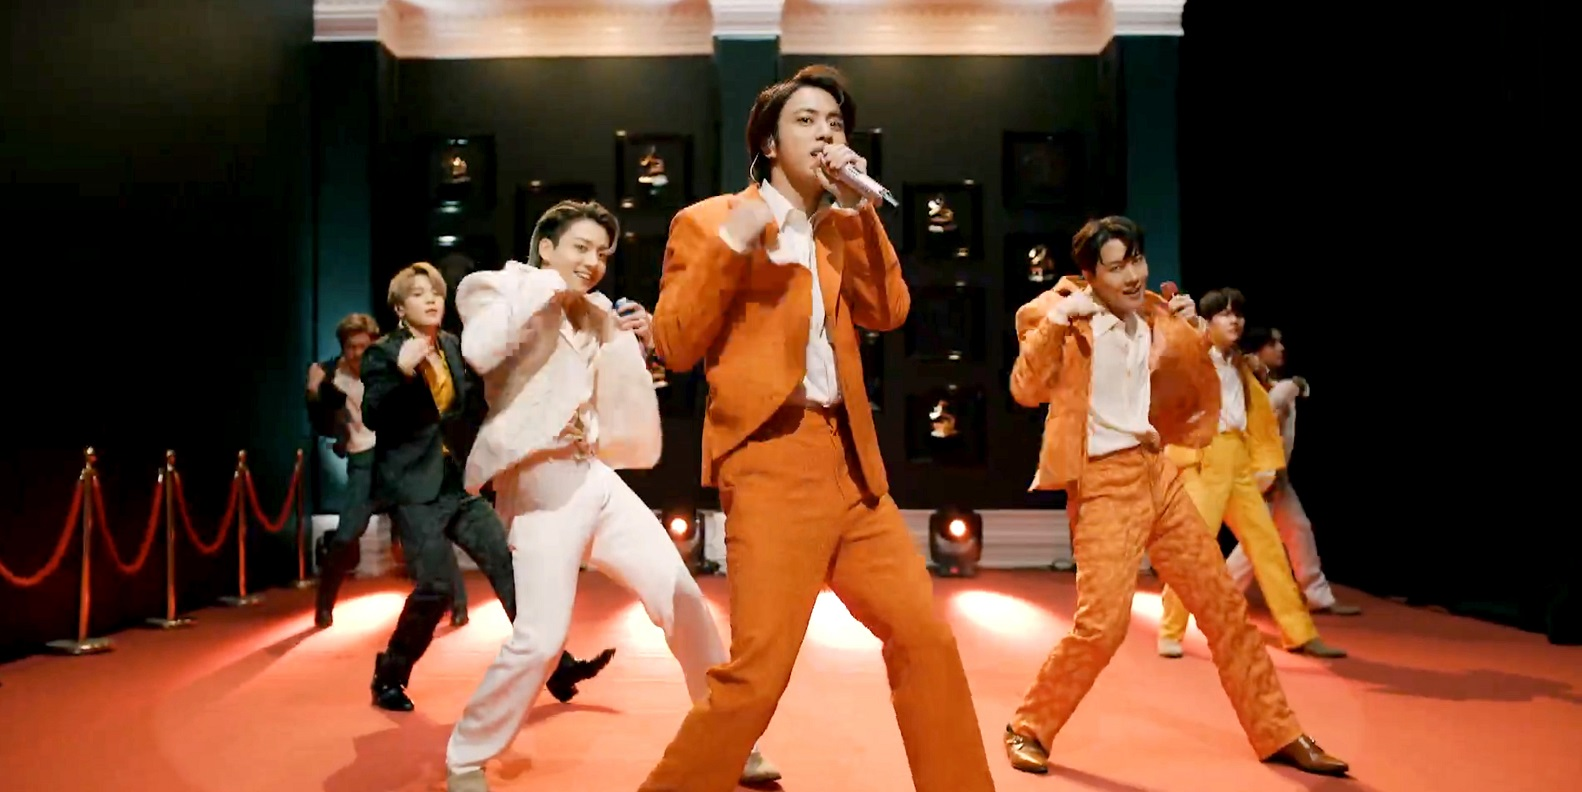 K-pop boy band BTS, in a screengrab from the 2021 Grammy Awards broadcast (Theo Wargo/Getty Images for The Recording Academy)